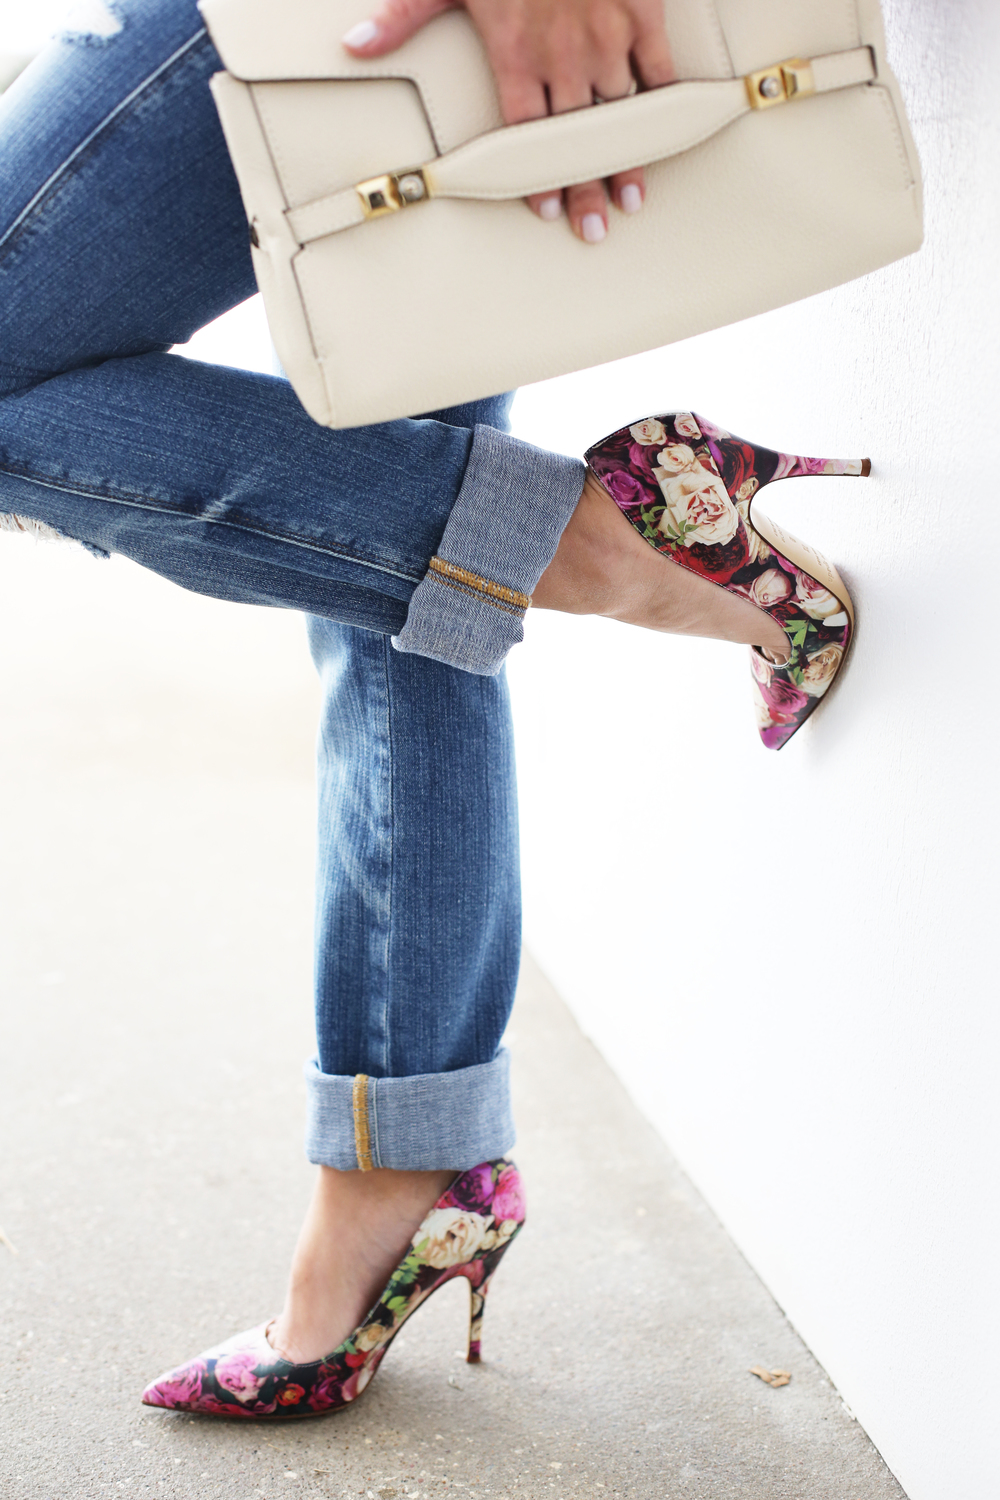 Henri Bendel Handbag, Kate Spade Shoes, Frame Denim.JPG